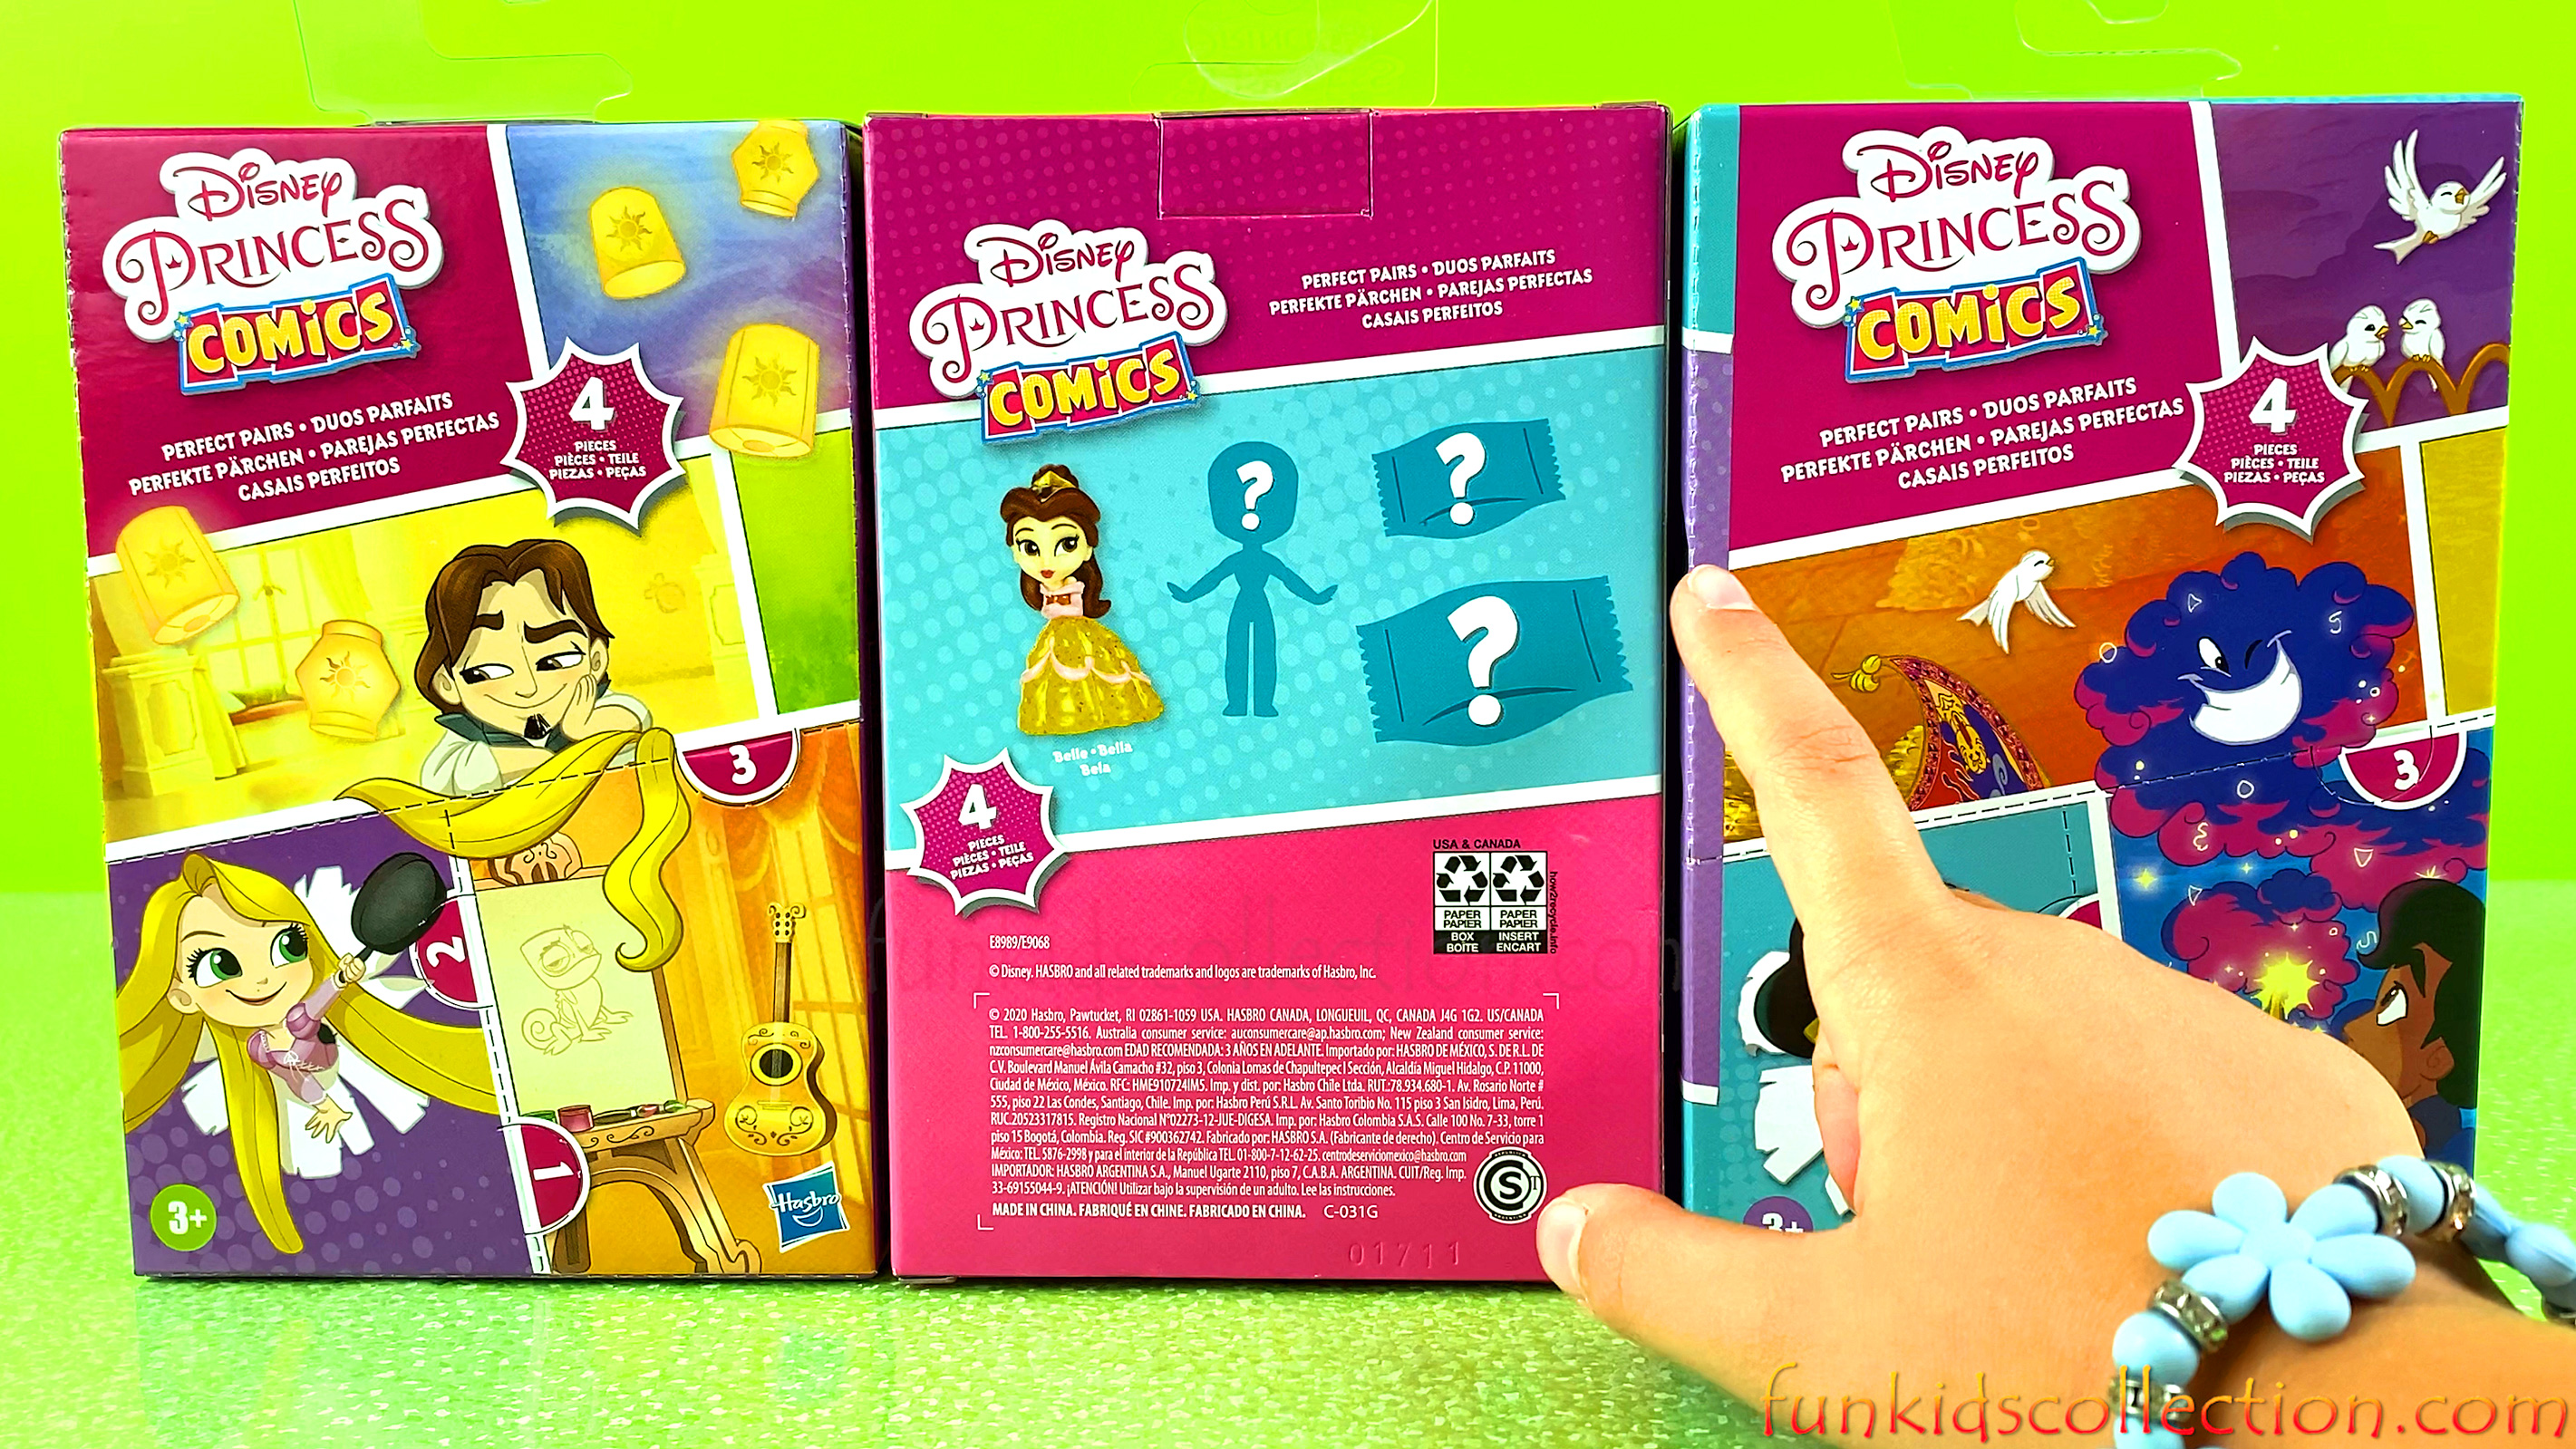 Disney Princess Comics Characters | Disney Princess Comics Perfect Pair | EBD Toys